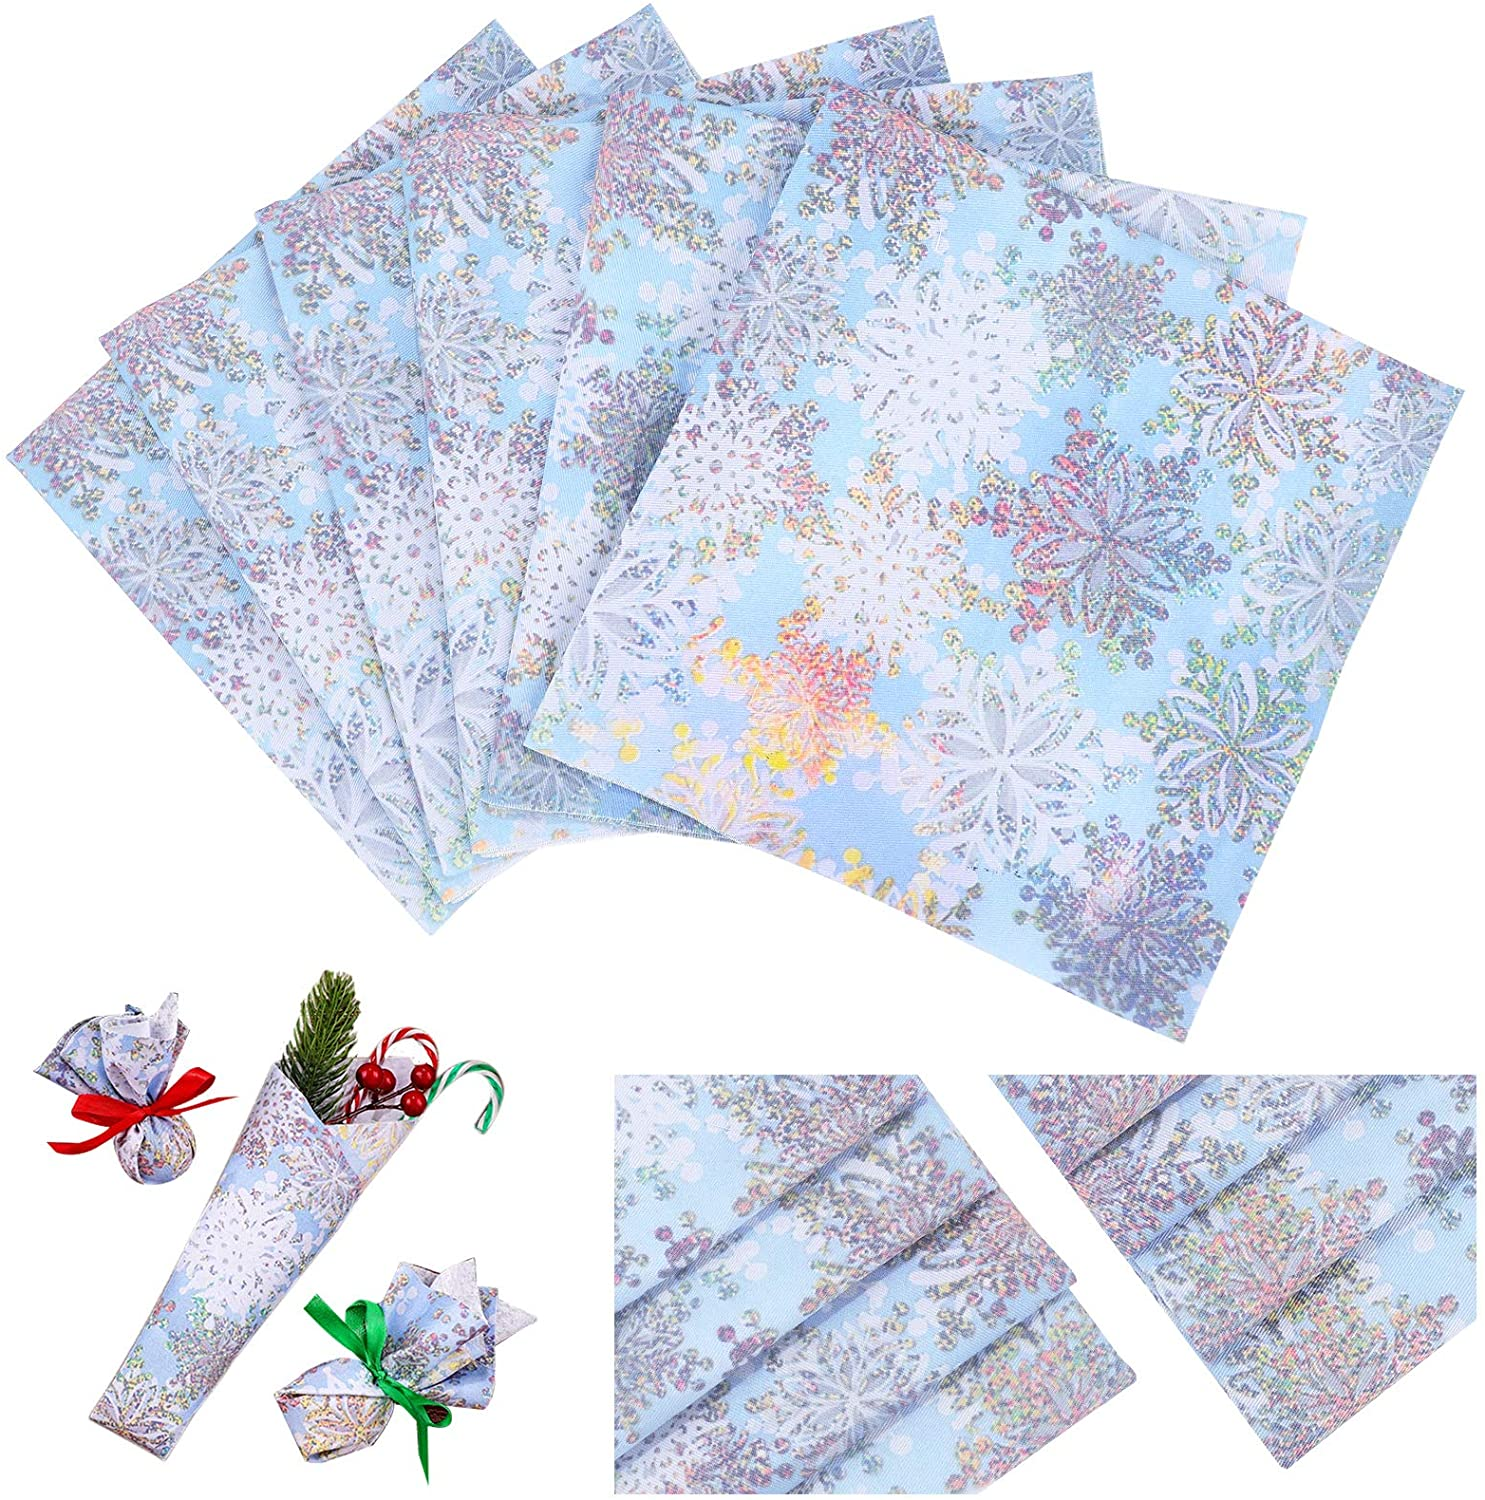 6 Pieces Poplin Cotton Fabric Fat Quarters 18 x 18 Inch/ 45 x 45 cm Snowflake Cotton Quilting Fabric Tie-Dyed Cotton Fabric Precut Fabric Square Patchwork for DIY Dressmaking Clothes Christmas